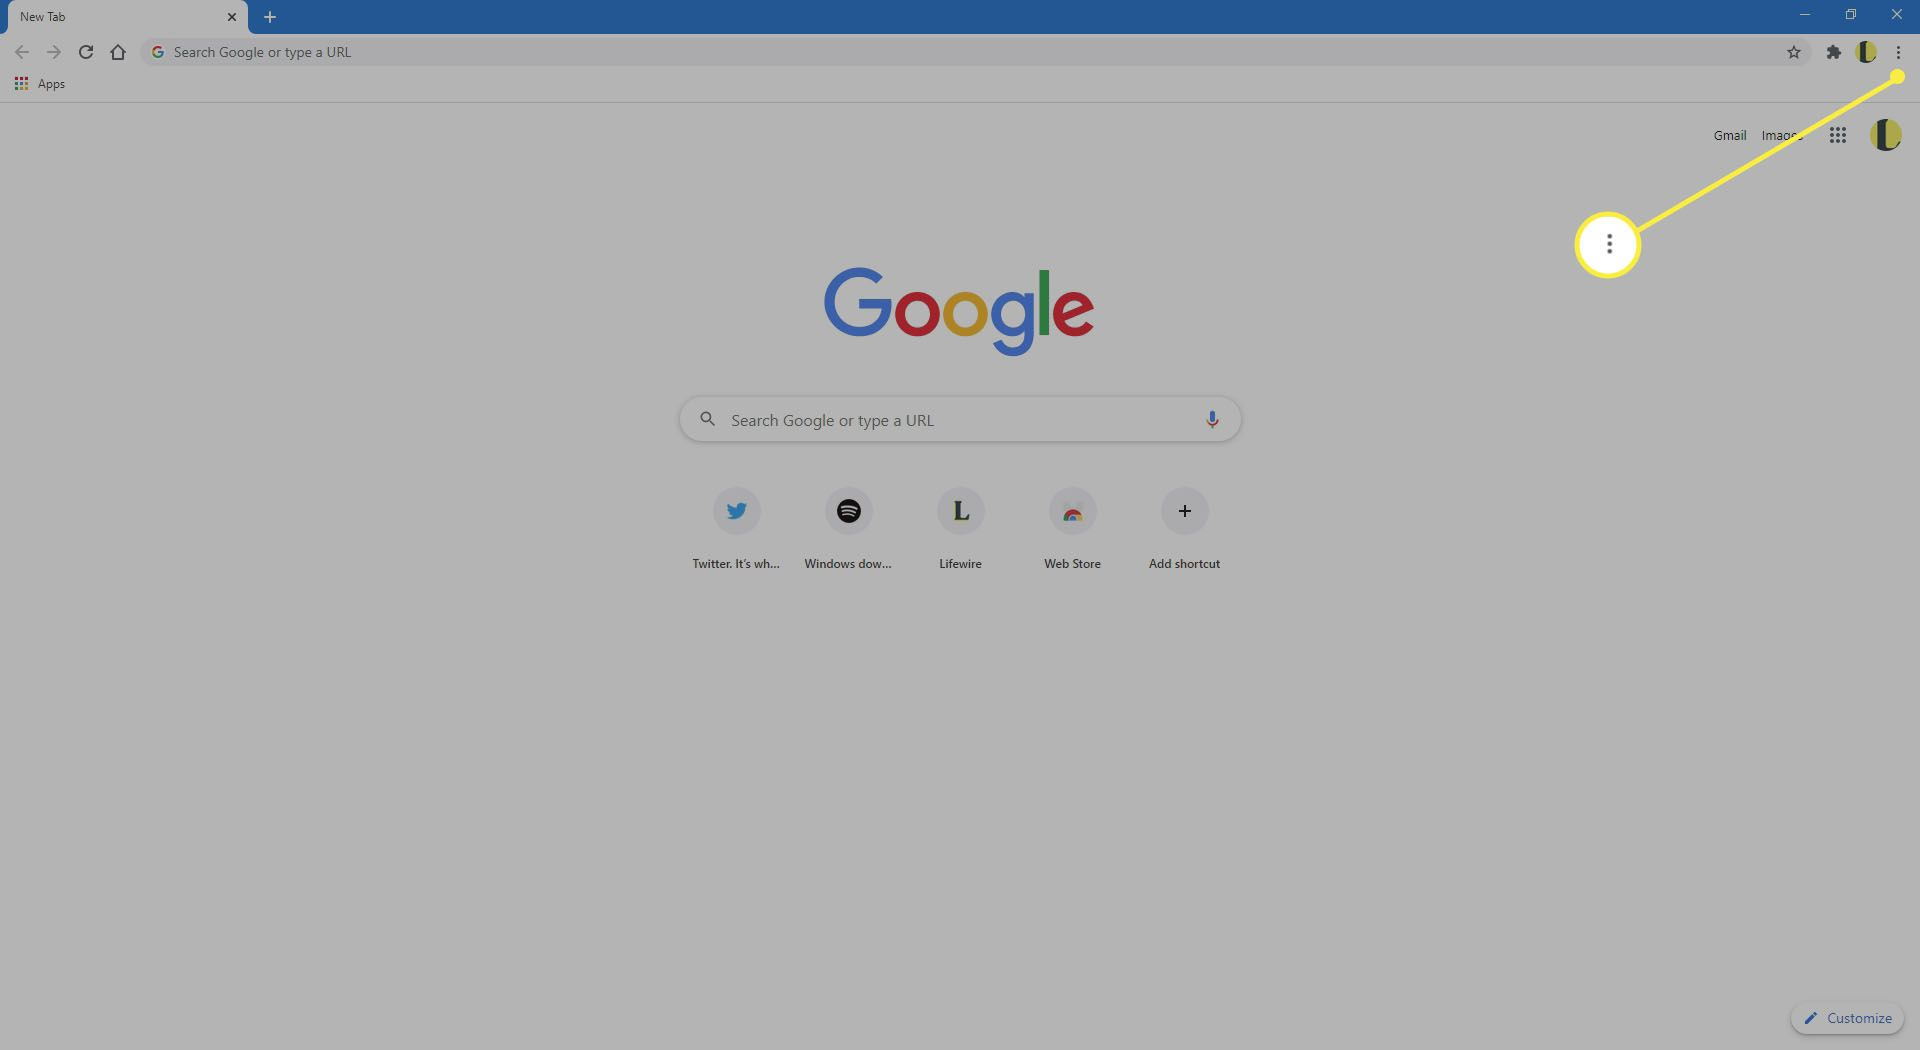 Chrome with the More Options menu highlighted